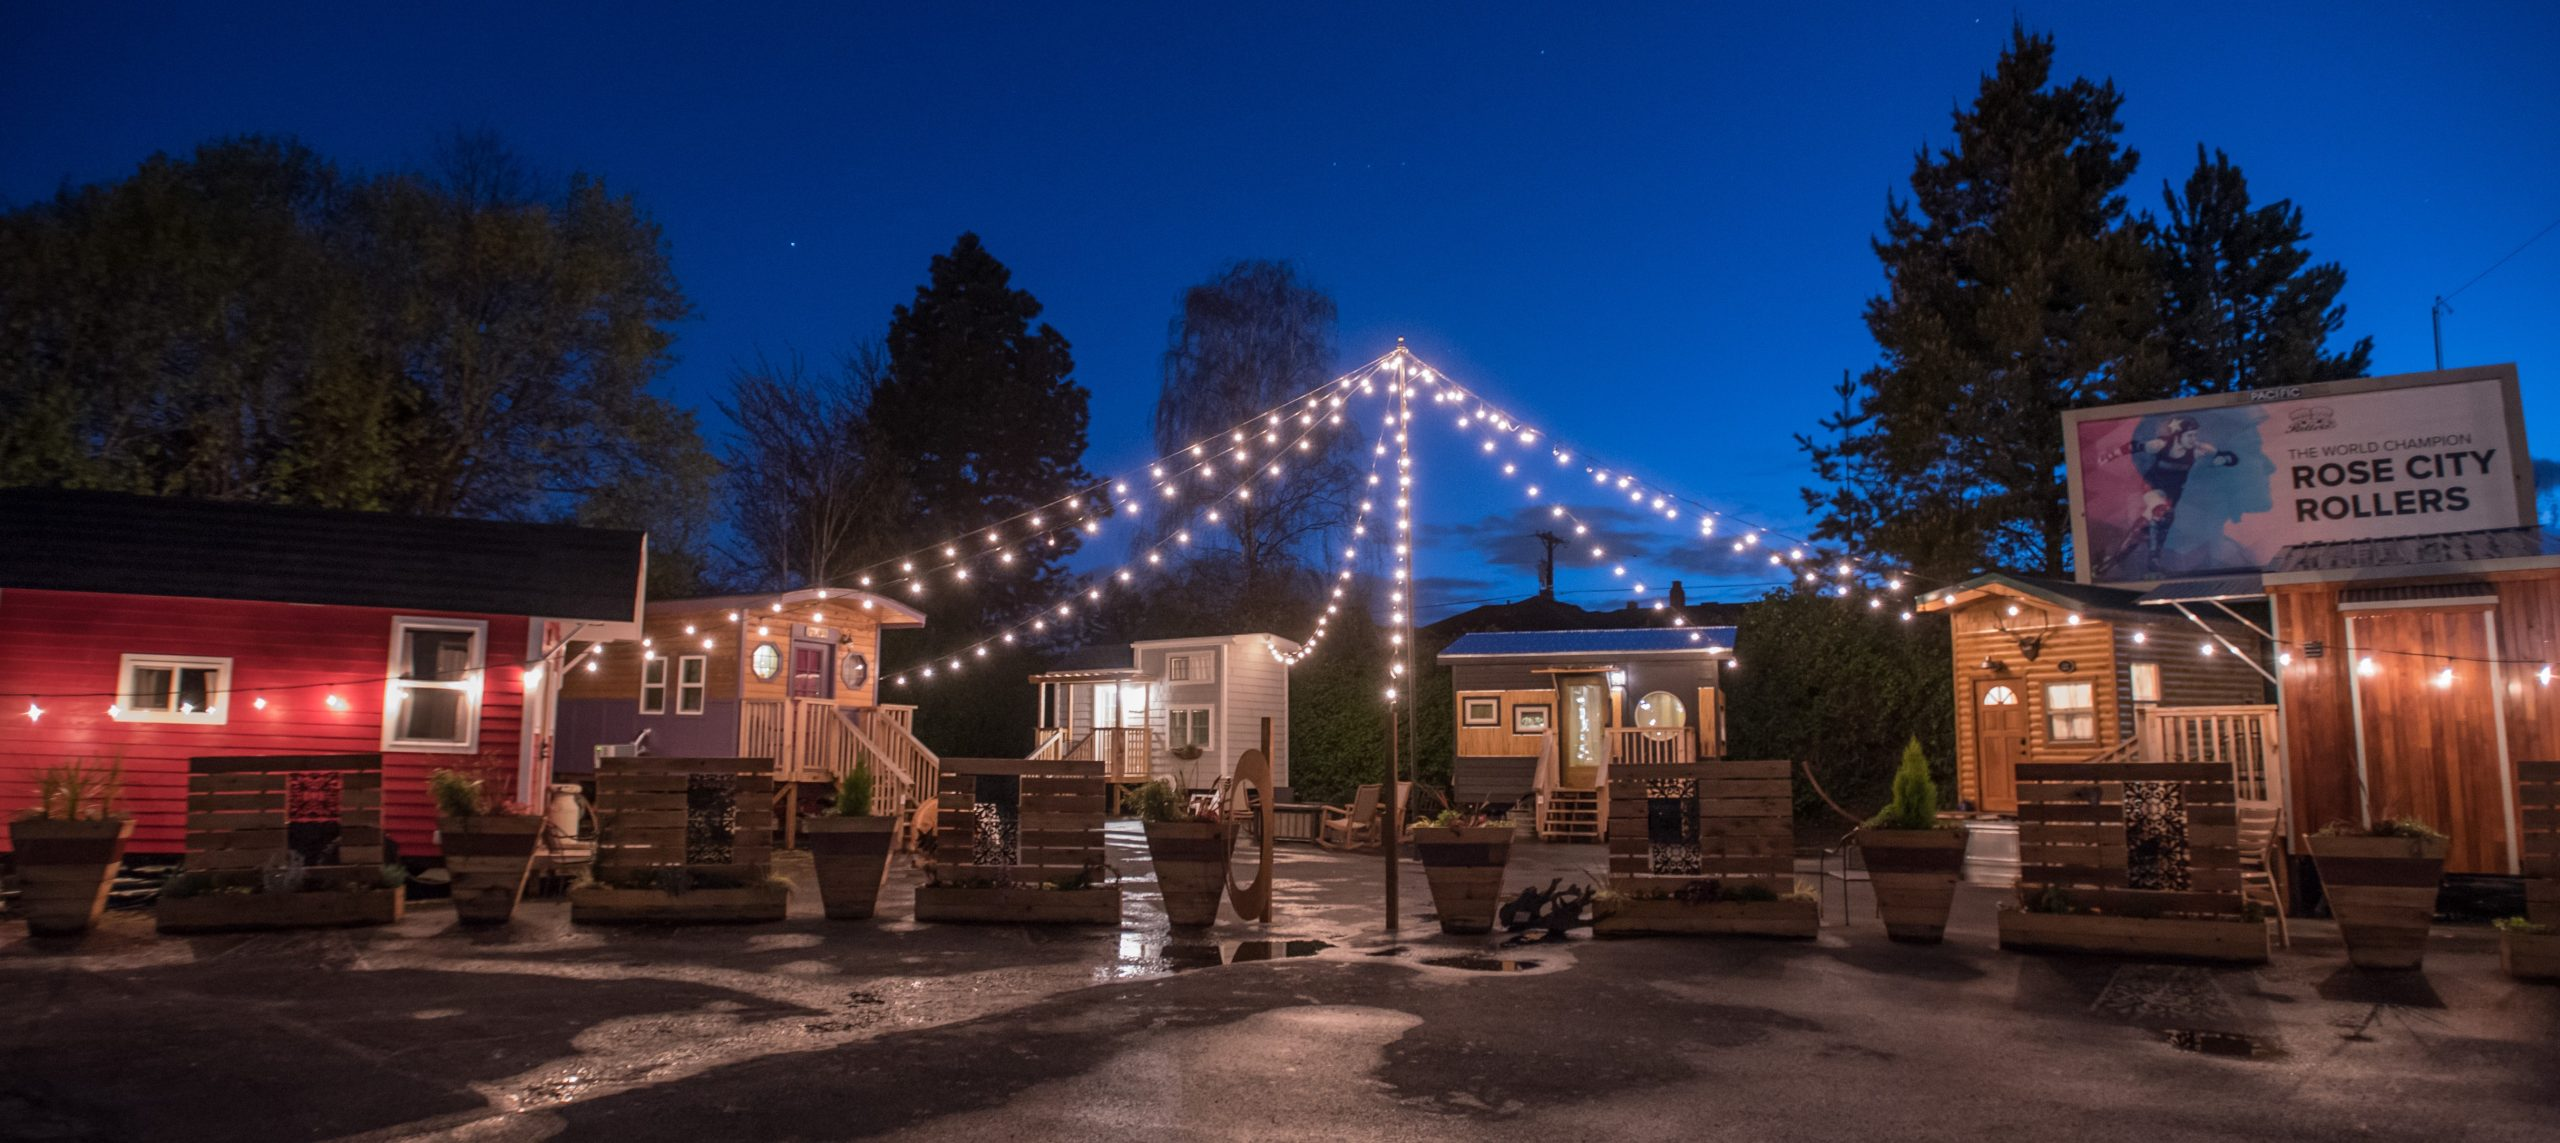 Q&A: A New Tiny House for the Tiny Digs Hotel in Portland